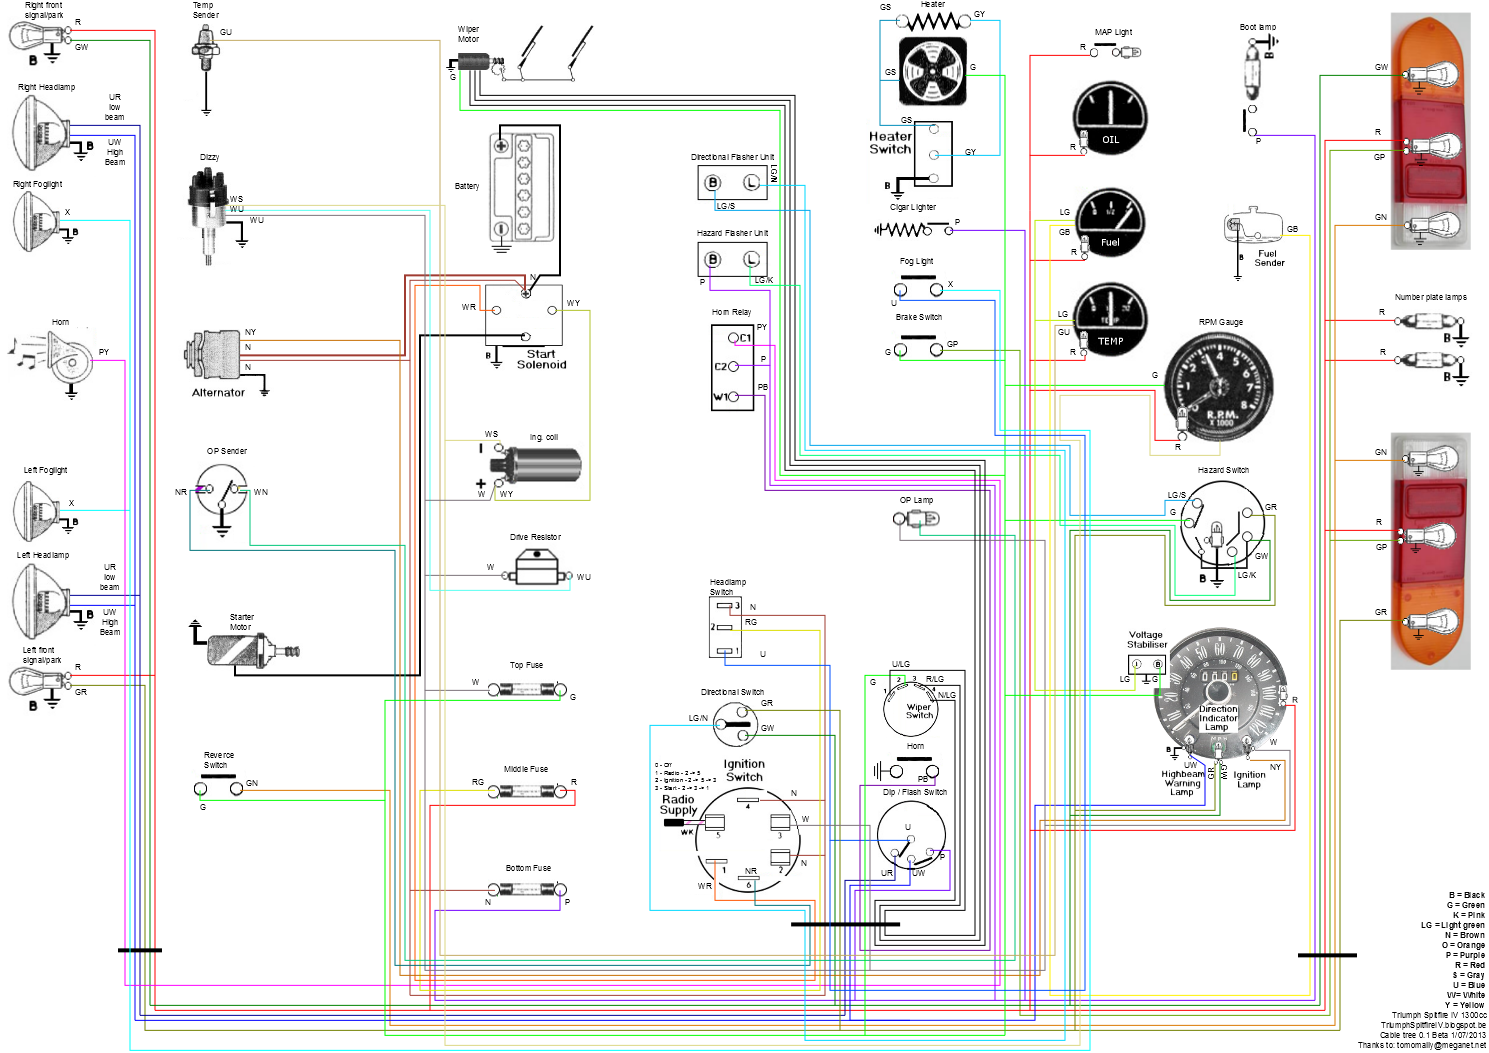 spitfire iv wiring diagram mk4 wiring diagram mk4 tdi wiring diagram \u2022 wiring diagrams j mk4 jetta wiring diagram at webbmarketing.co